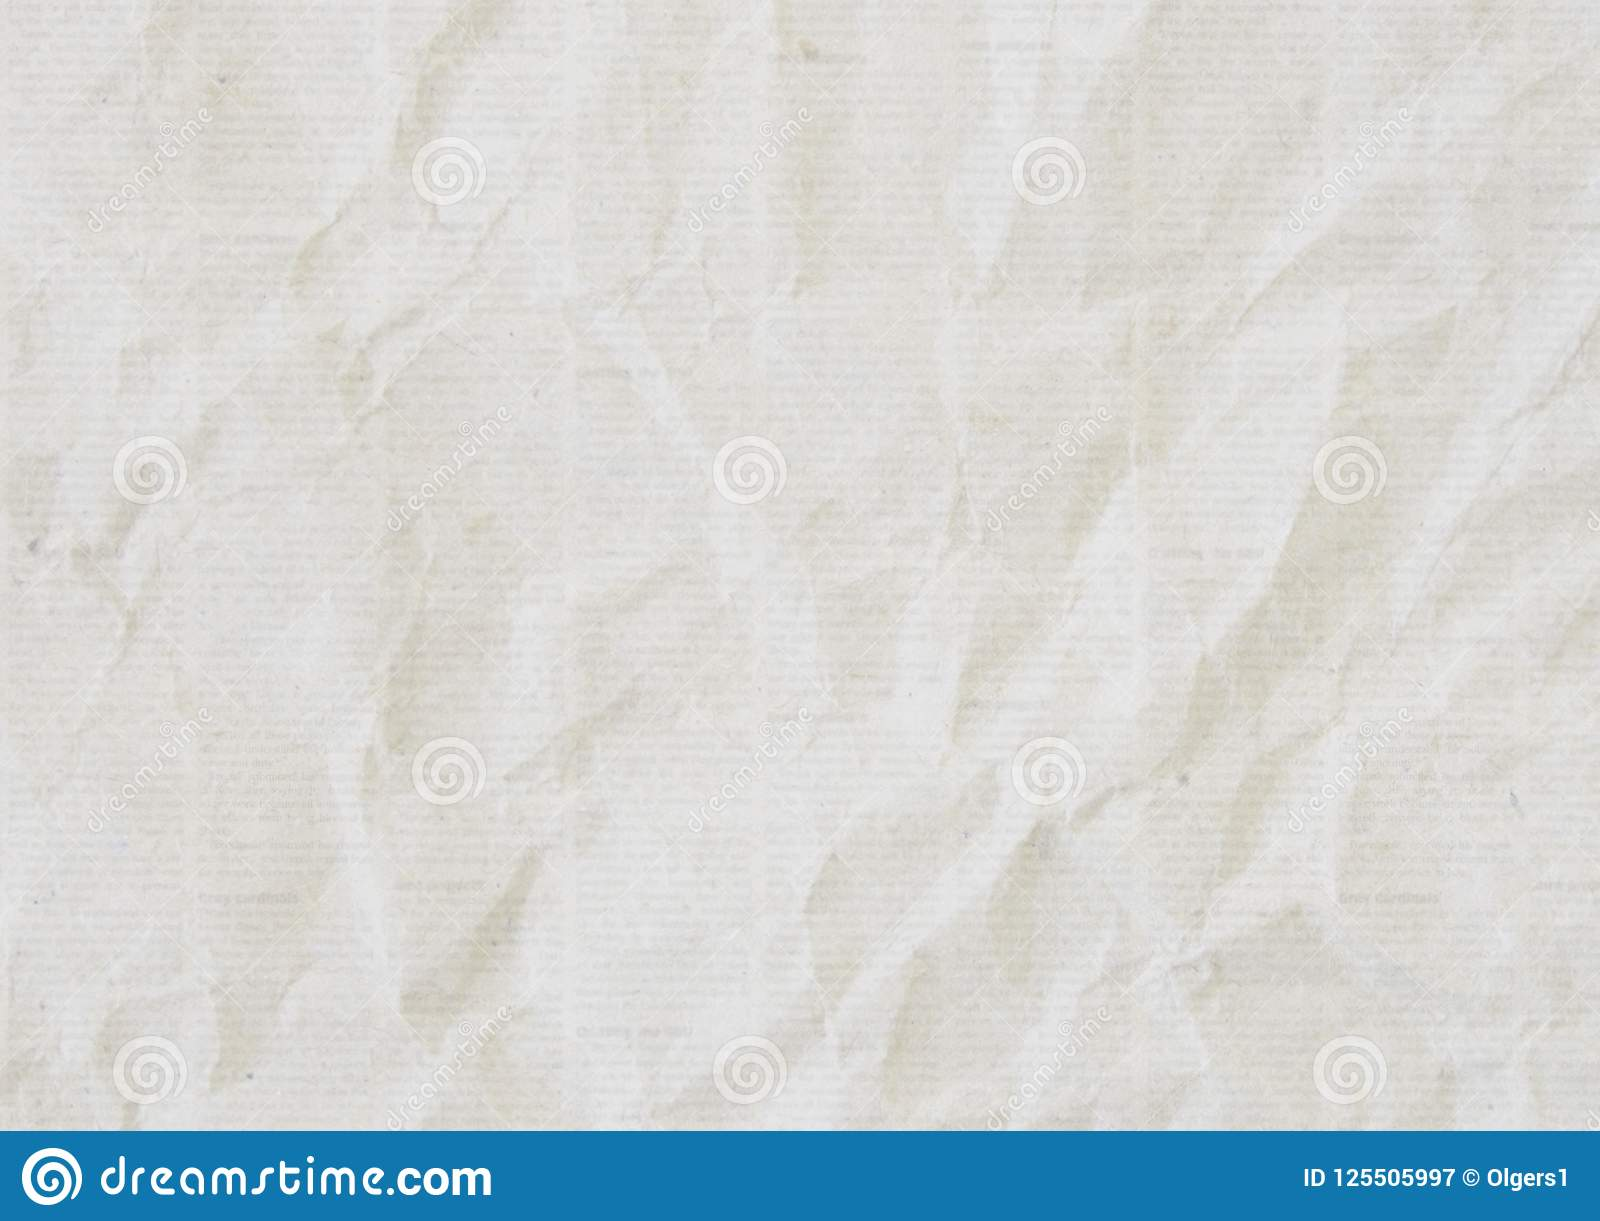 Old Crumpled Newspaper Texture Background Stock Image - Image of ...